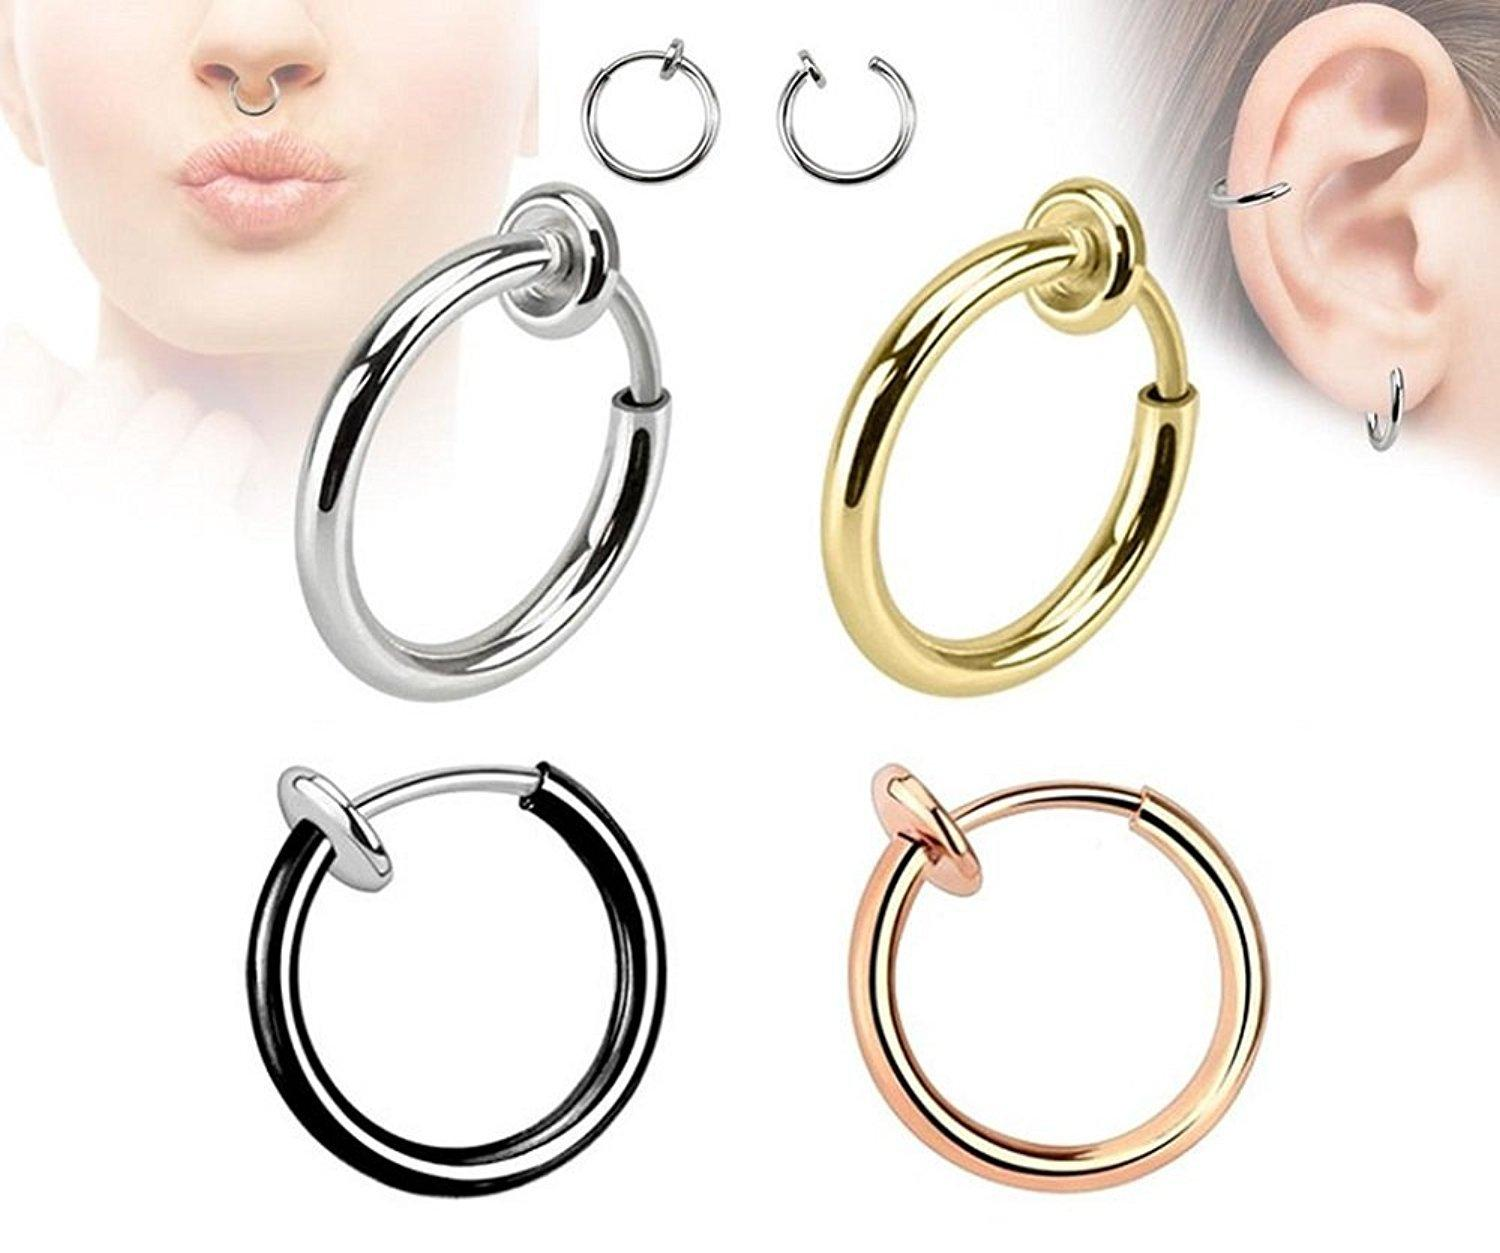 New Silver Gold Color Plated Ear Cuff Clip Earrings Women Men Fake Piercing Septum Lip Clicker Jewelry